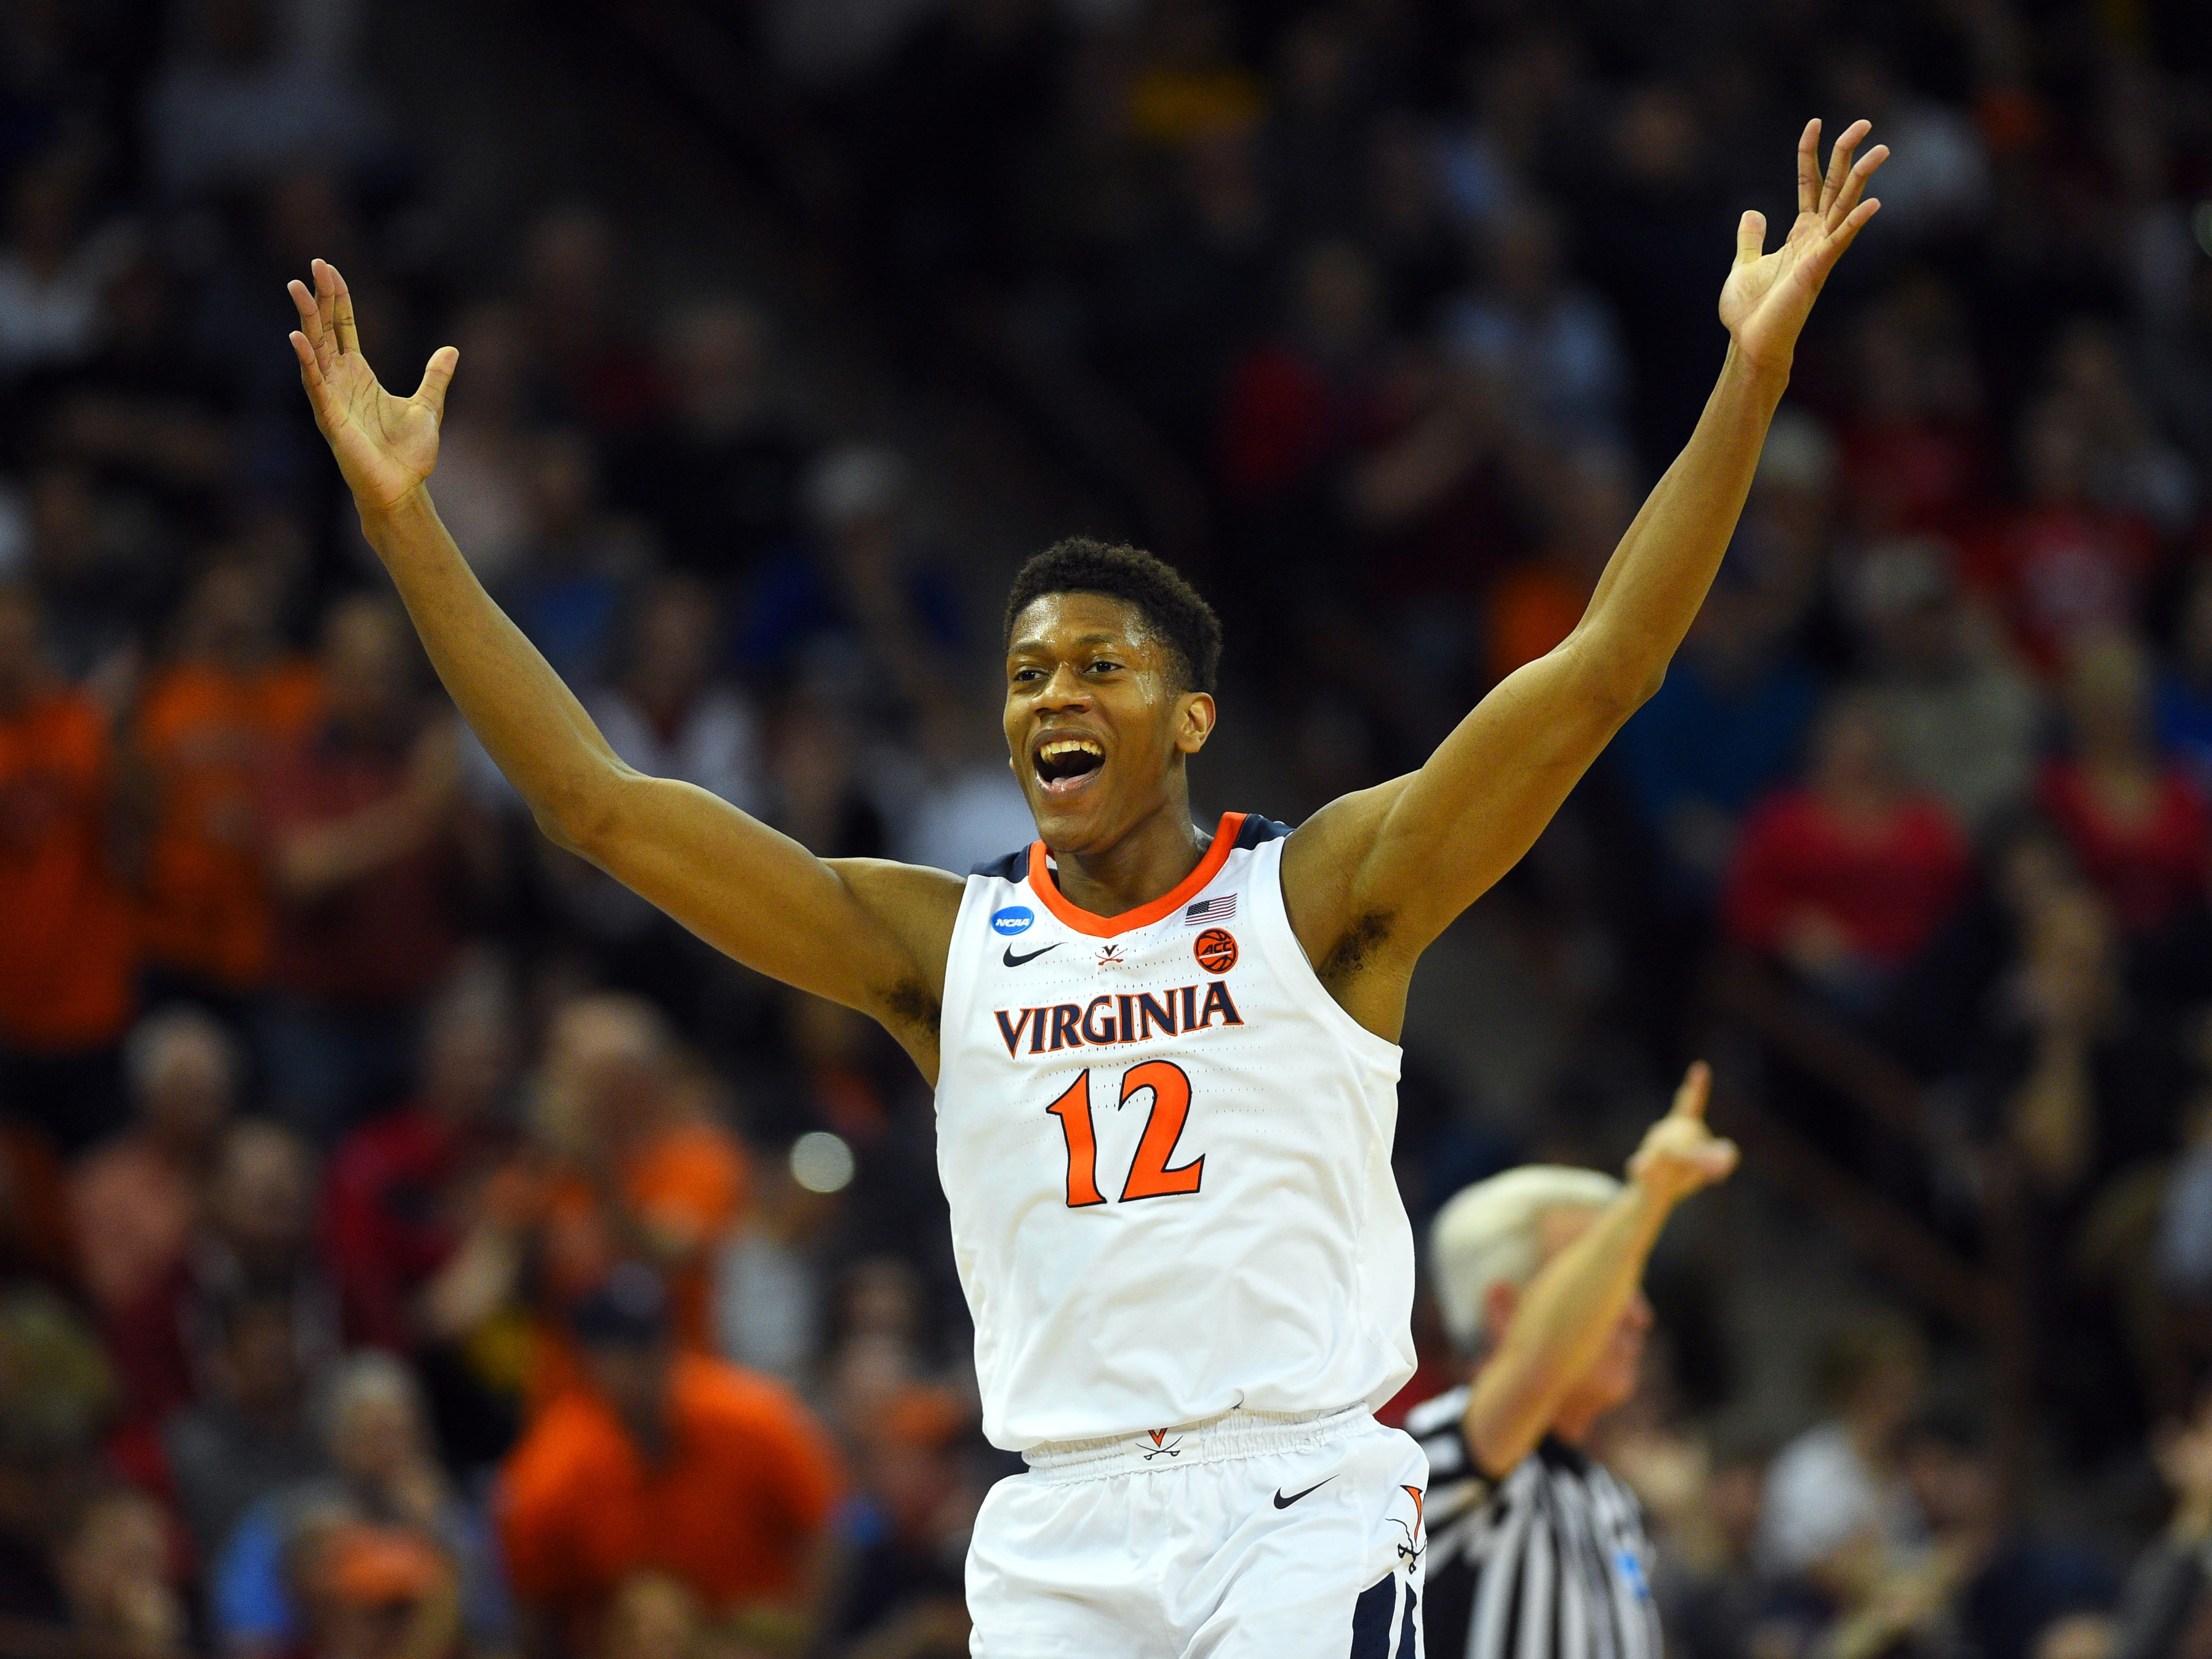 First round: No 16-over-1 upset this time! Virginia guard De'Andre Hunter celebrates after making a shot during the second half against Gardner-Webb. The Cavaliers fell behind early but went on to win, 71-56.